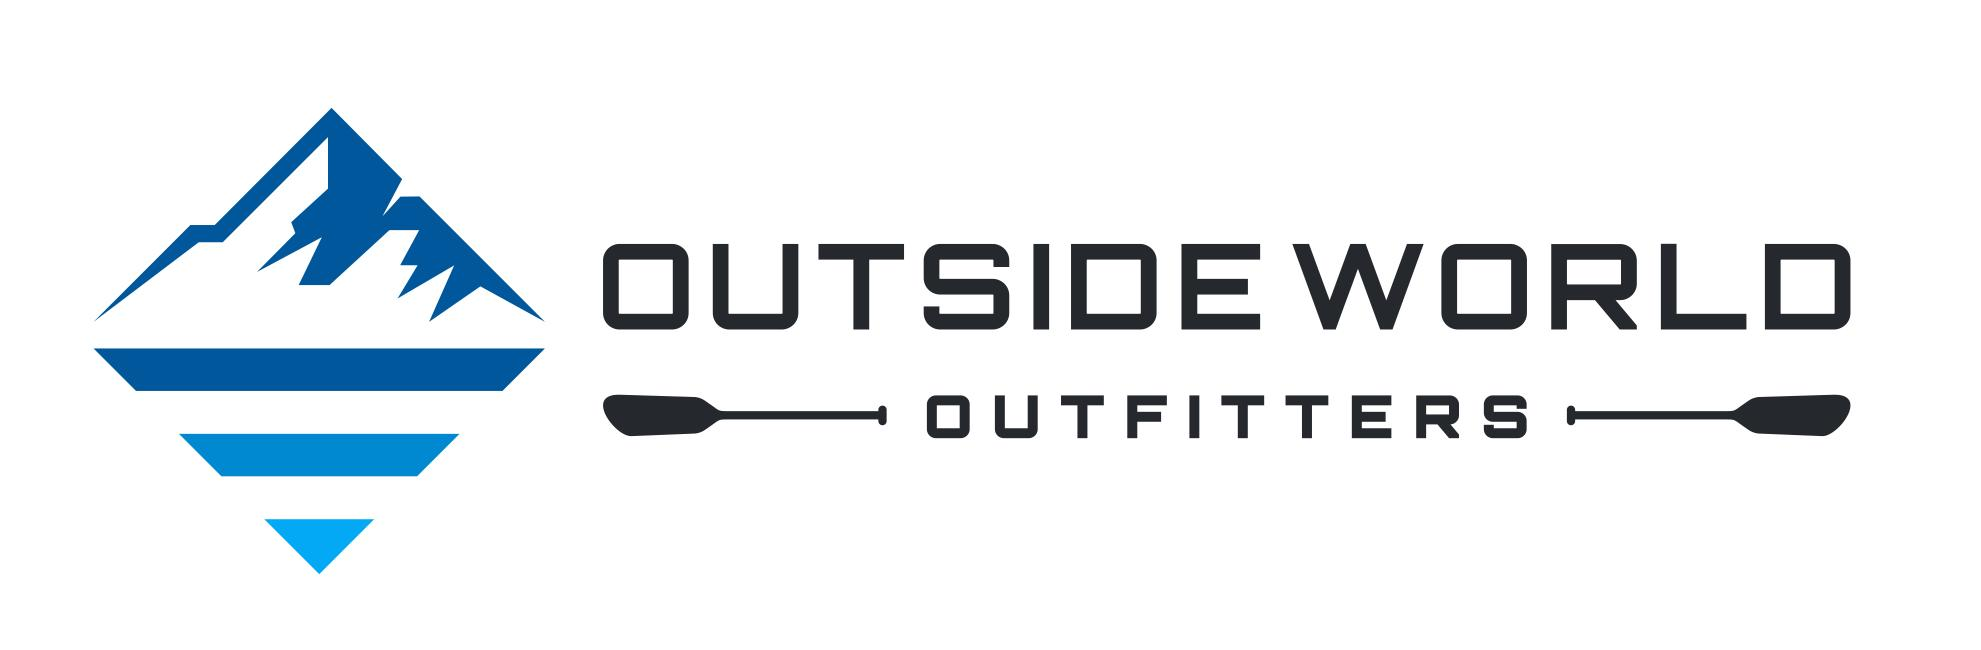 Outside World Outfitters logo